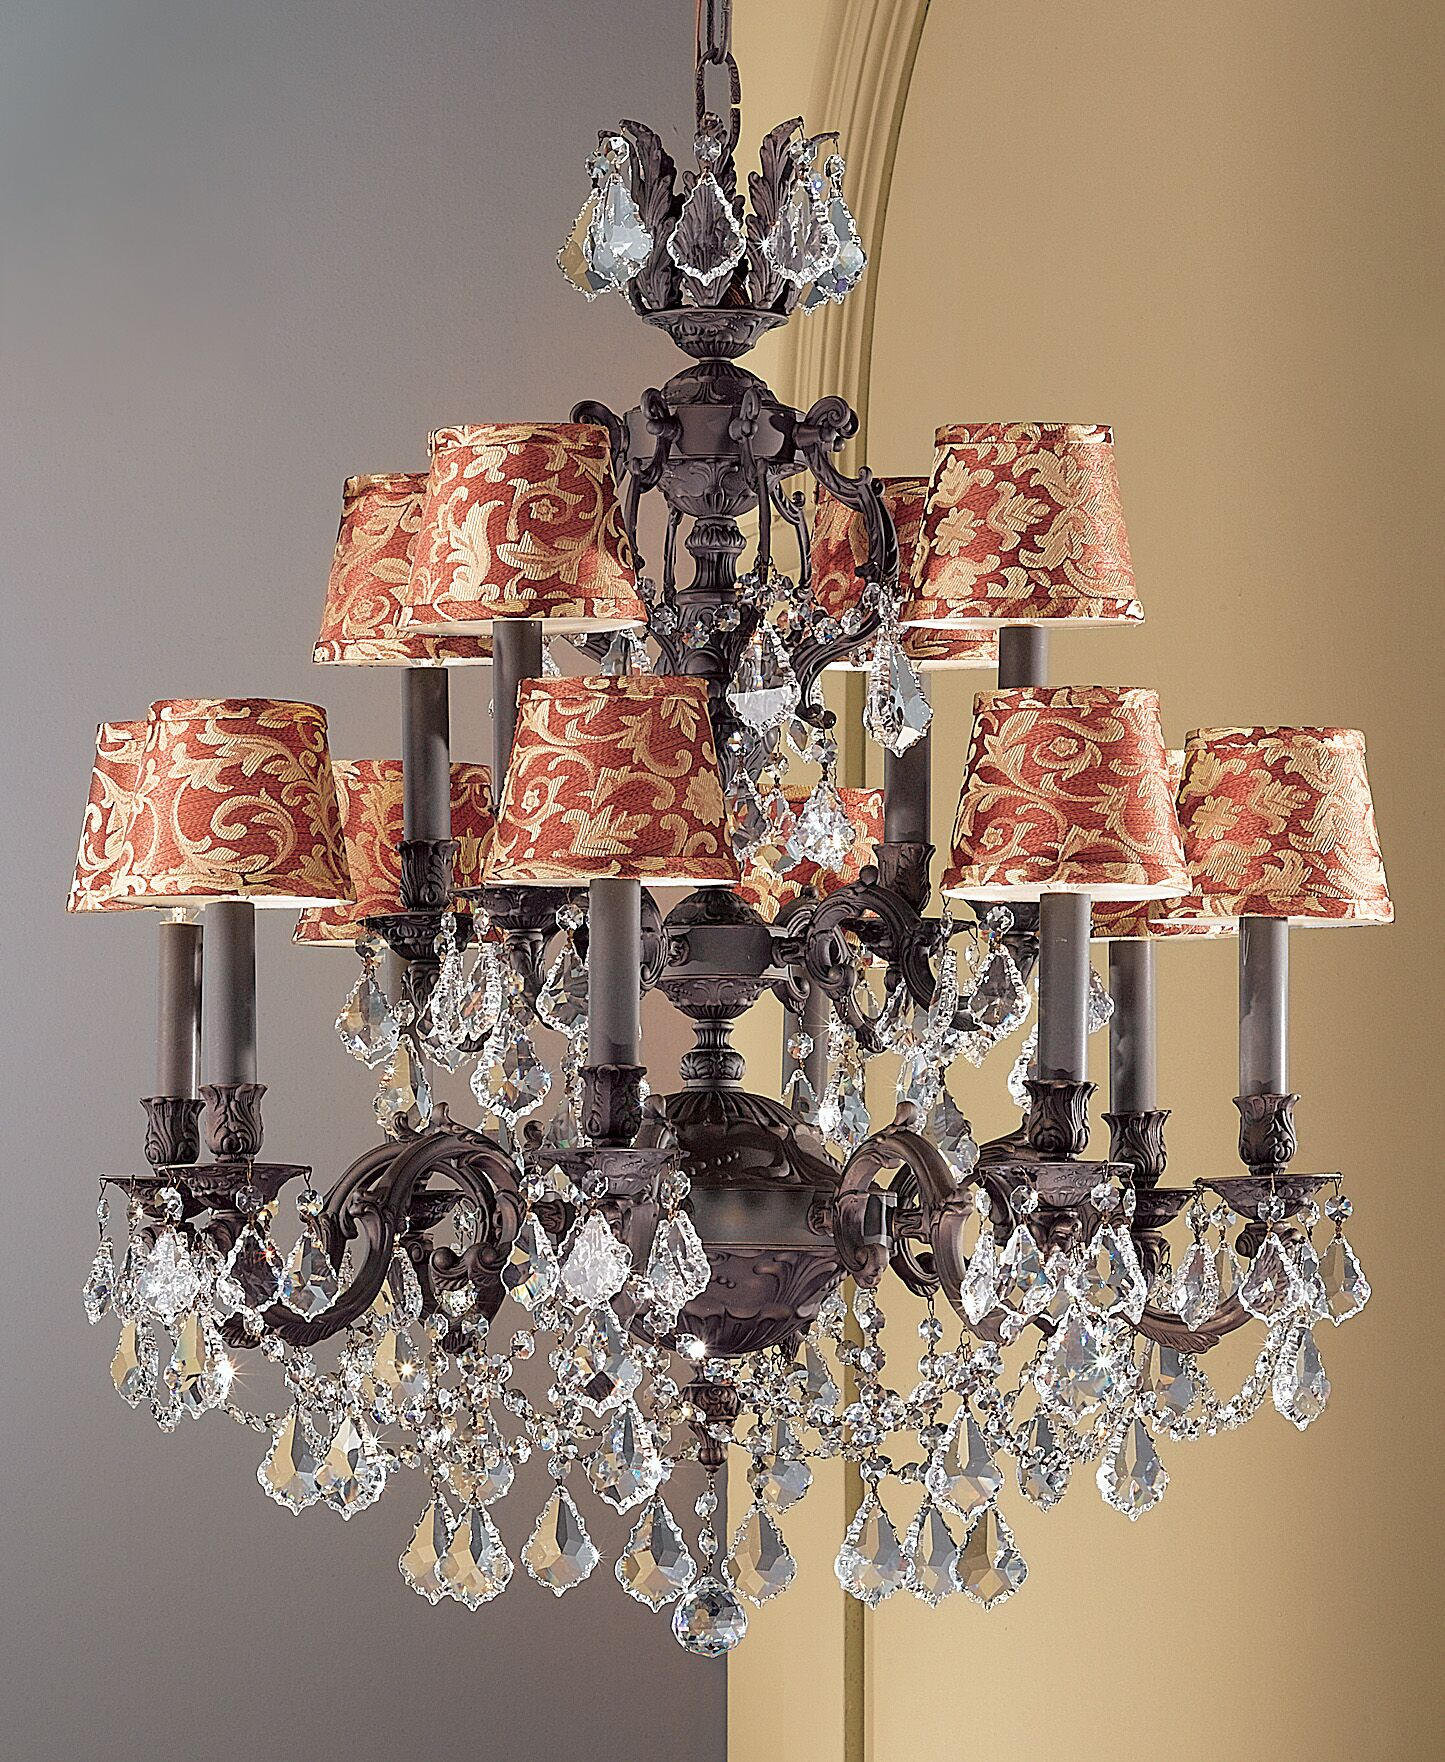 Chateau Imperial 12-Light Shaded Chandelier Finish: Aged Bronze, Crystal Type: Swarovski Spectra